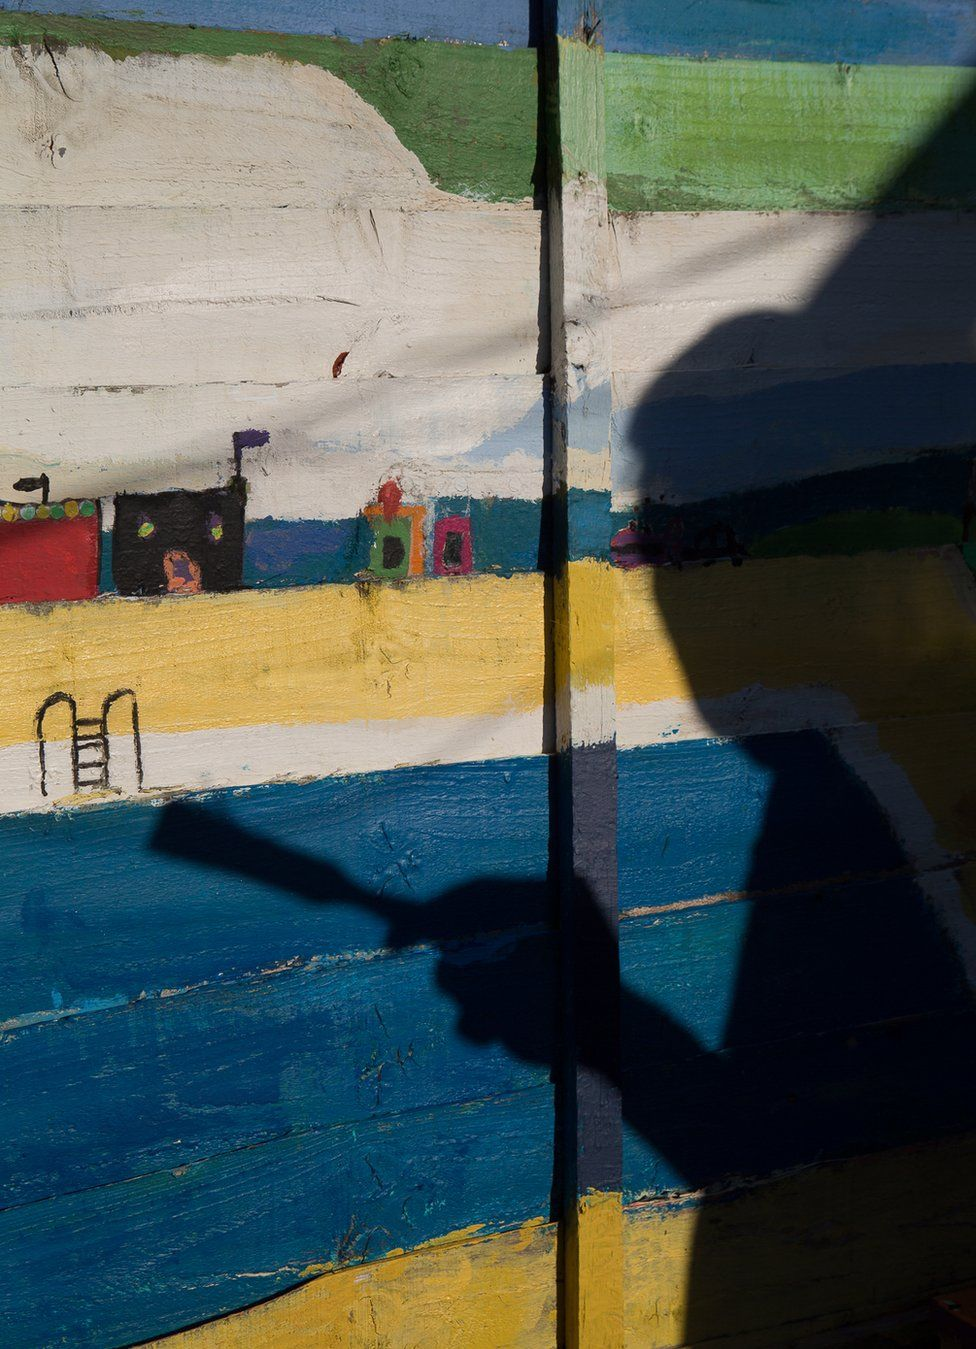 The shadow of a man paints a fence